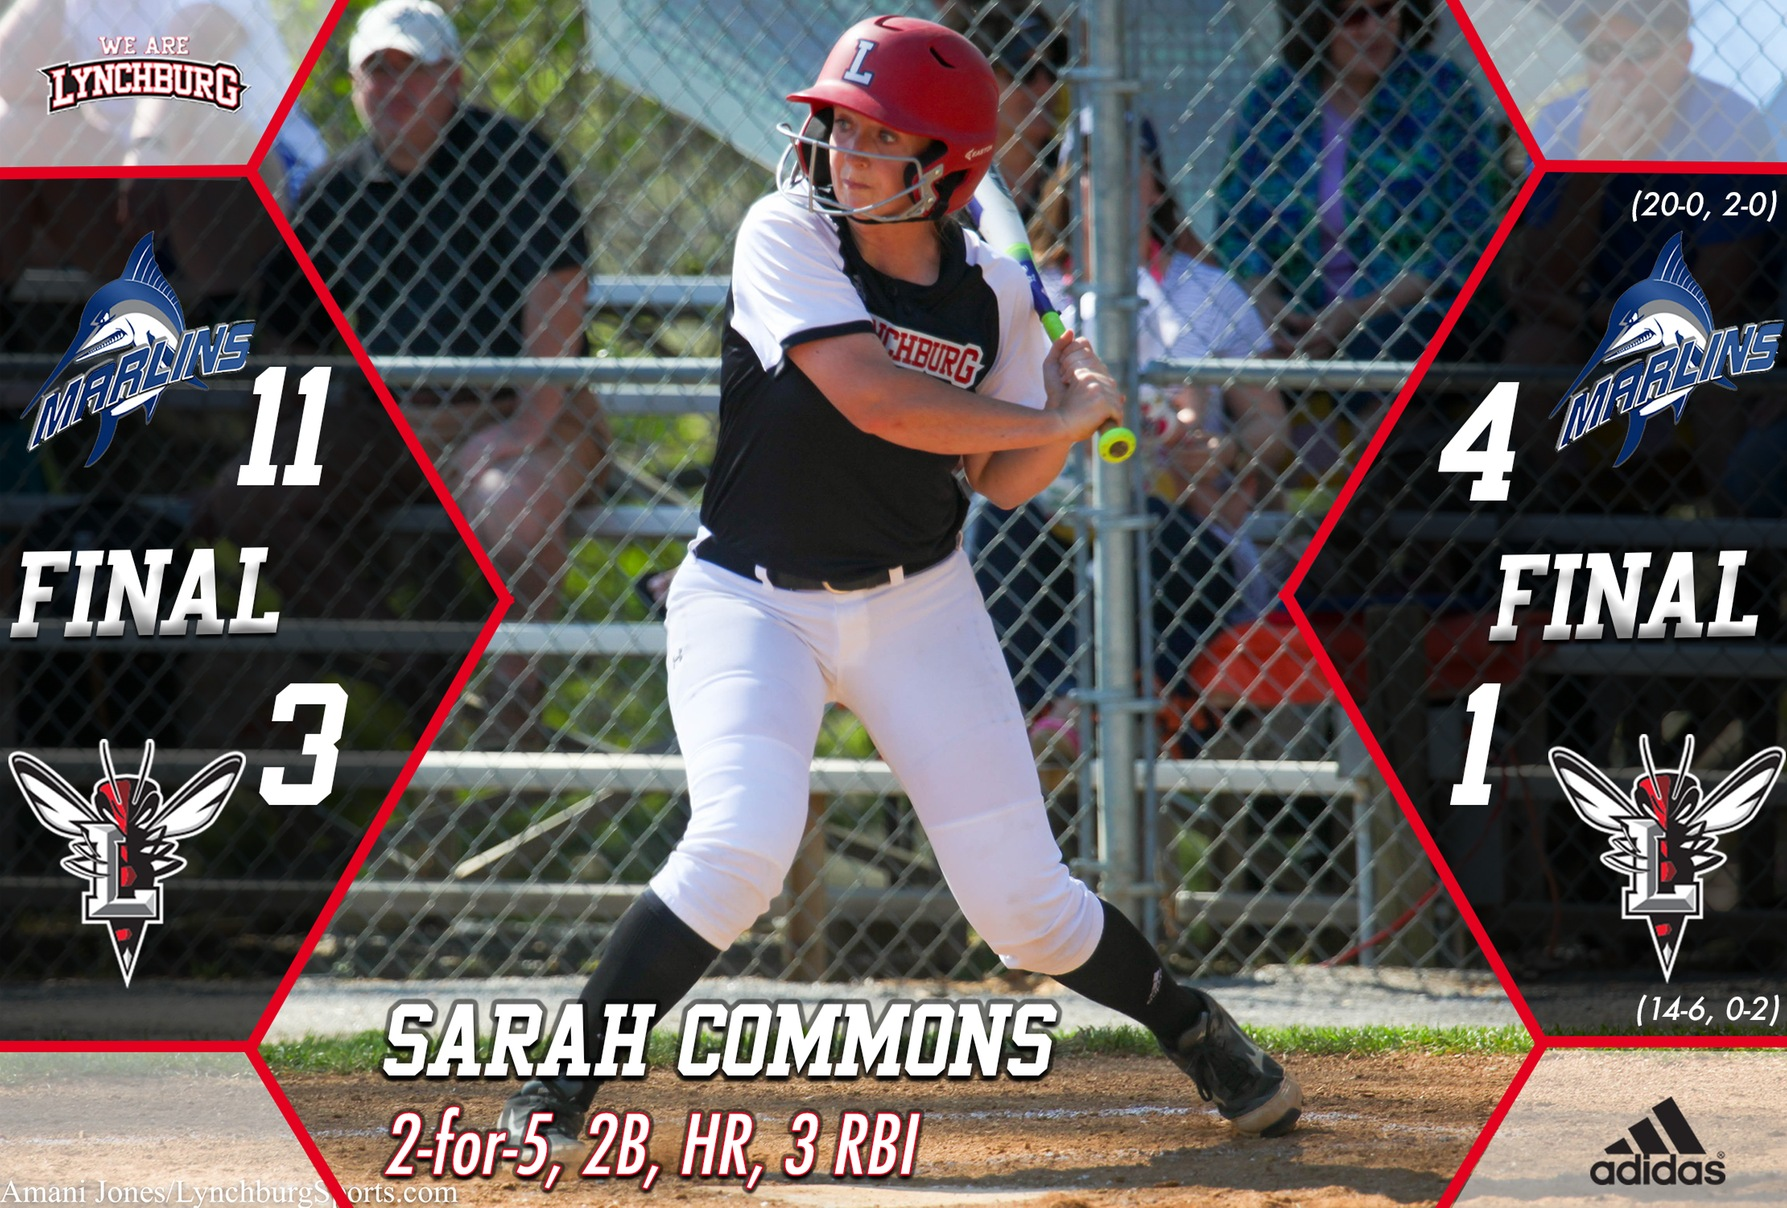 Sarah Commons at bat. Text: Sarah Commons, 2-for-5, 2B, HR, 3 RBI